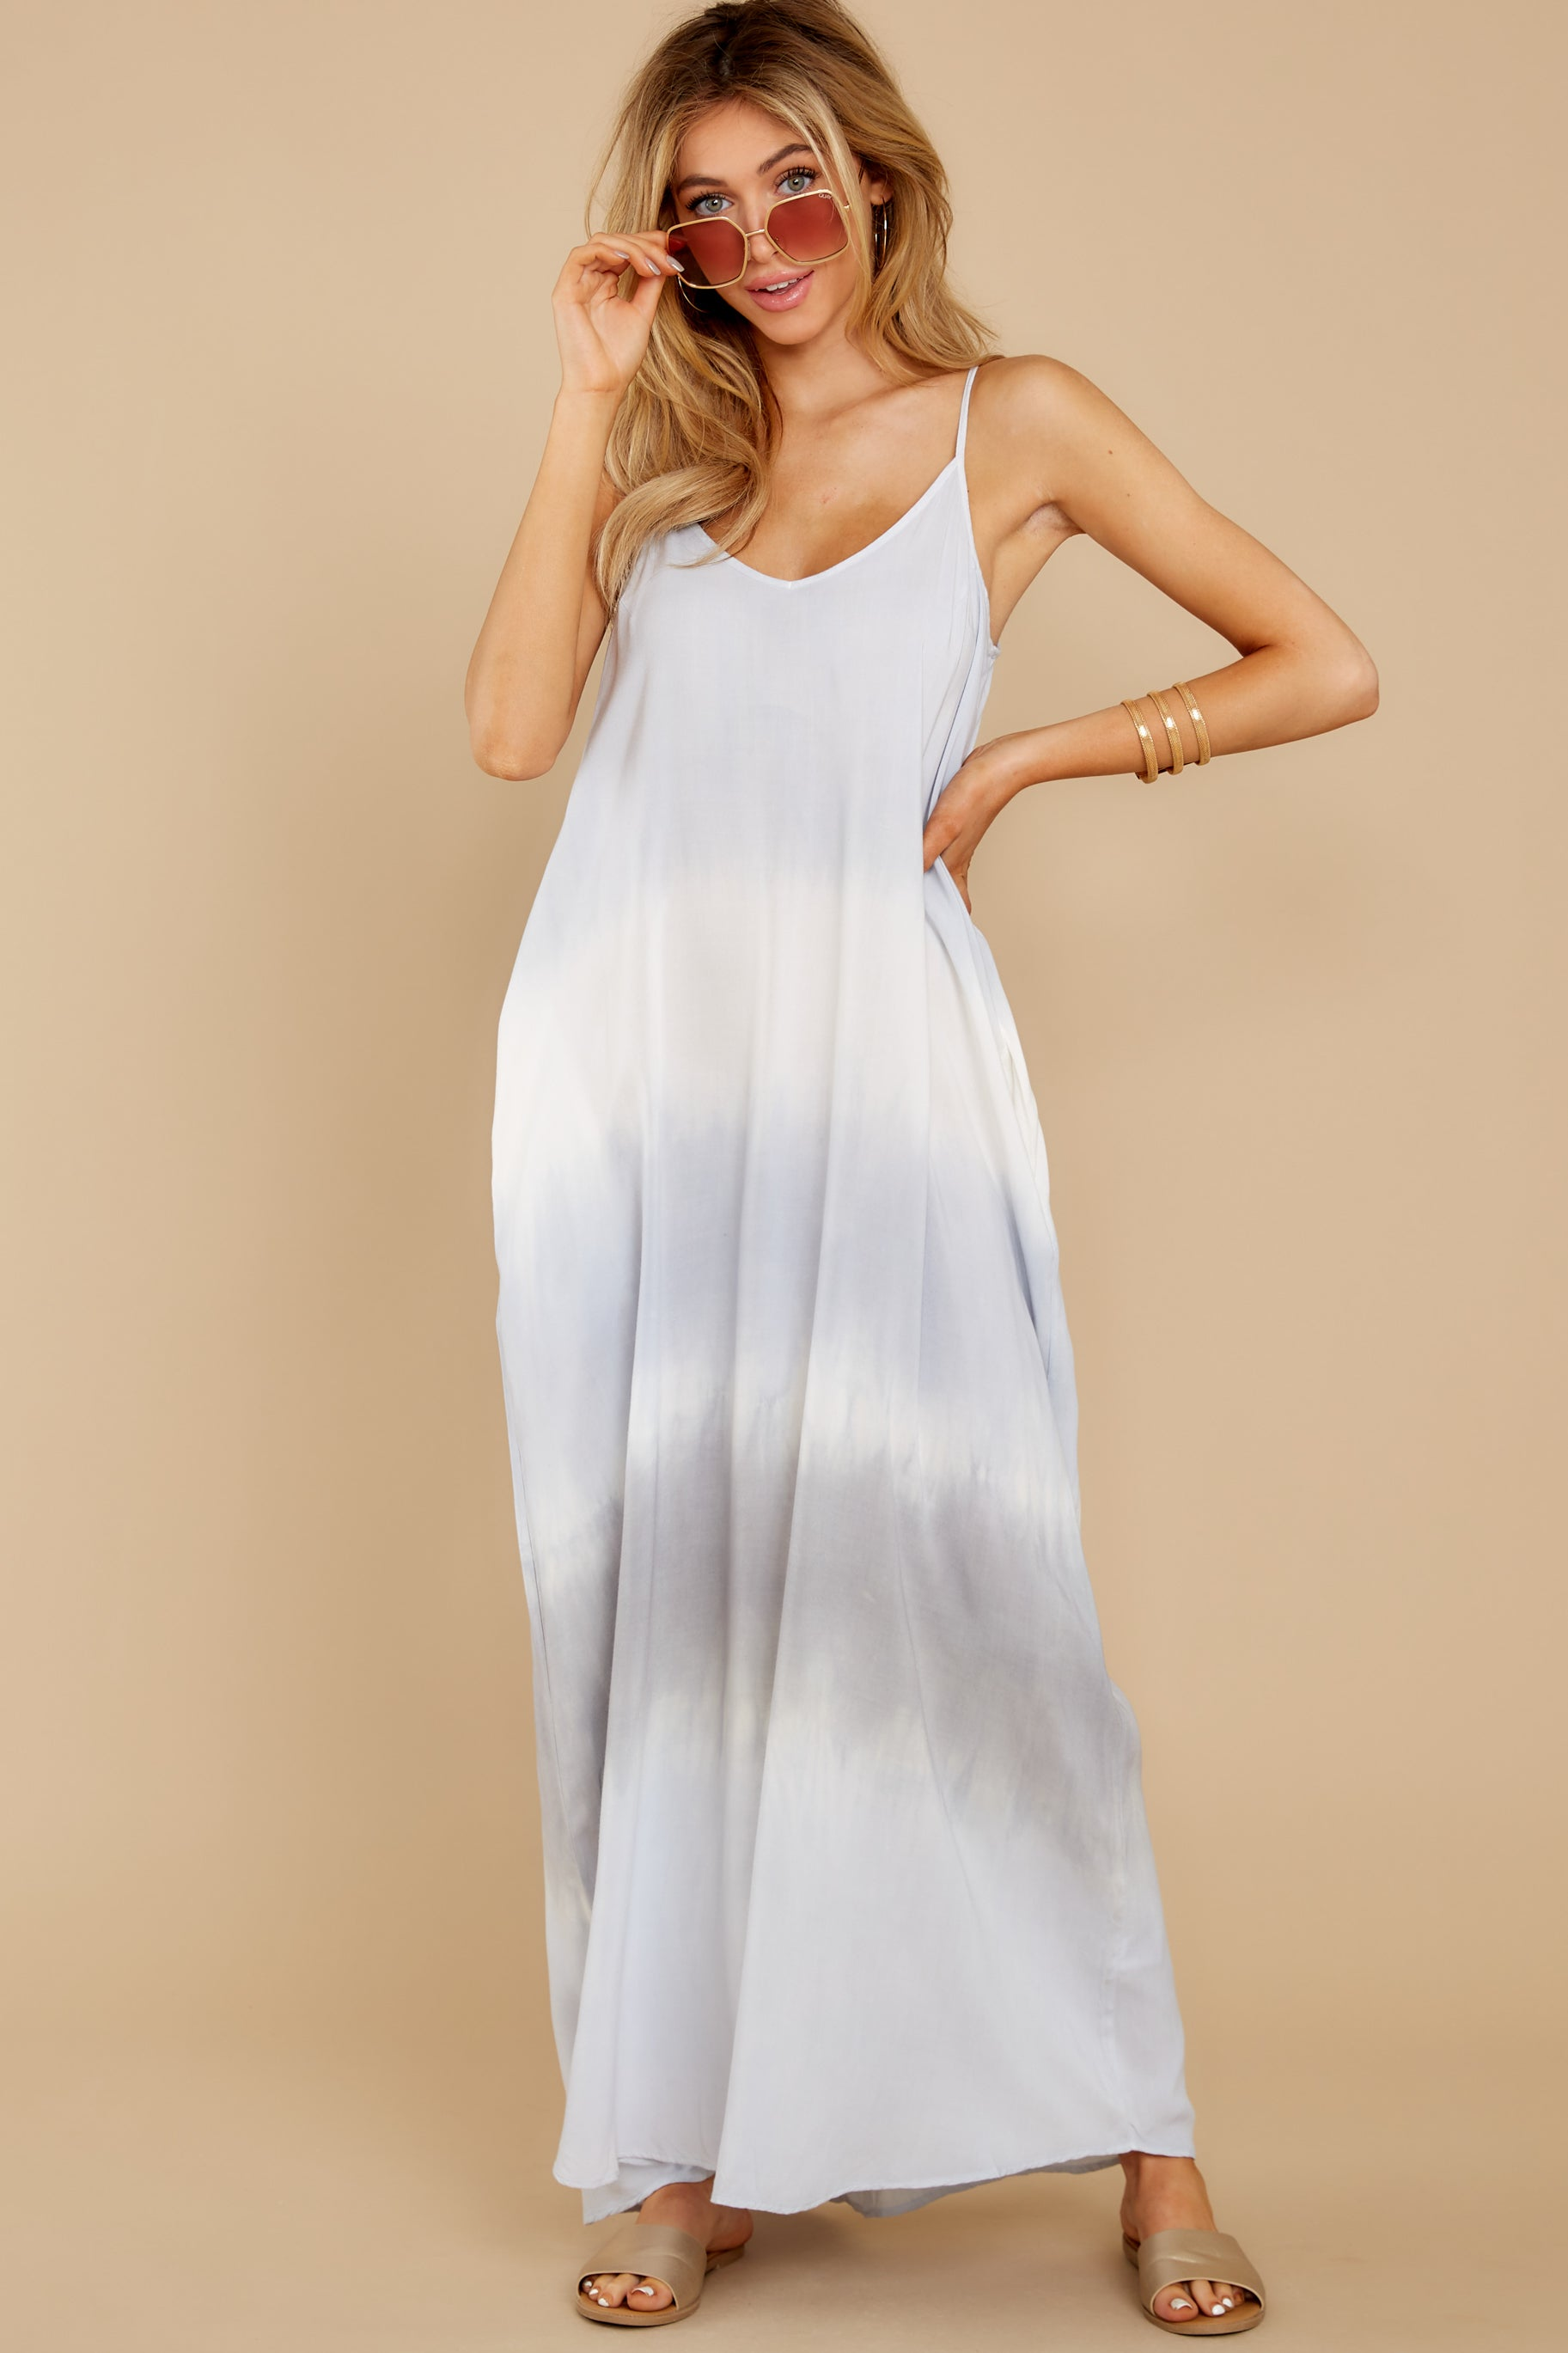 4 All My Love Light Blue Multi Maxi Dress at reddress.com